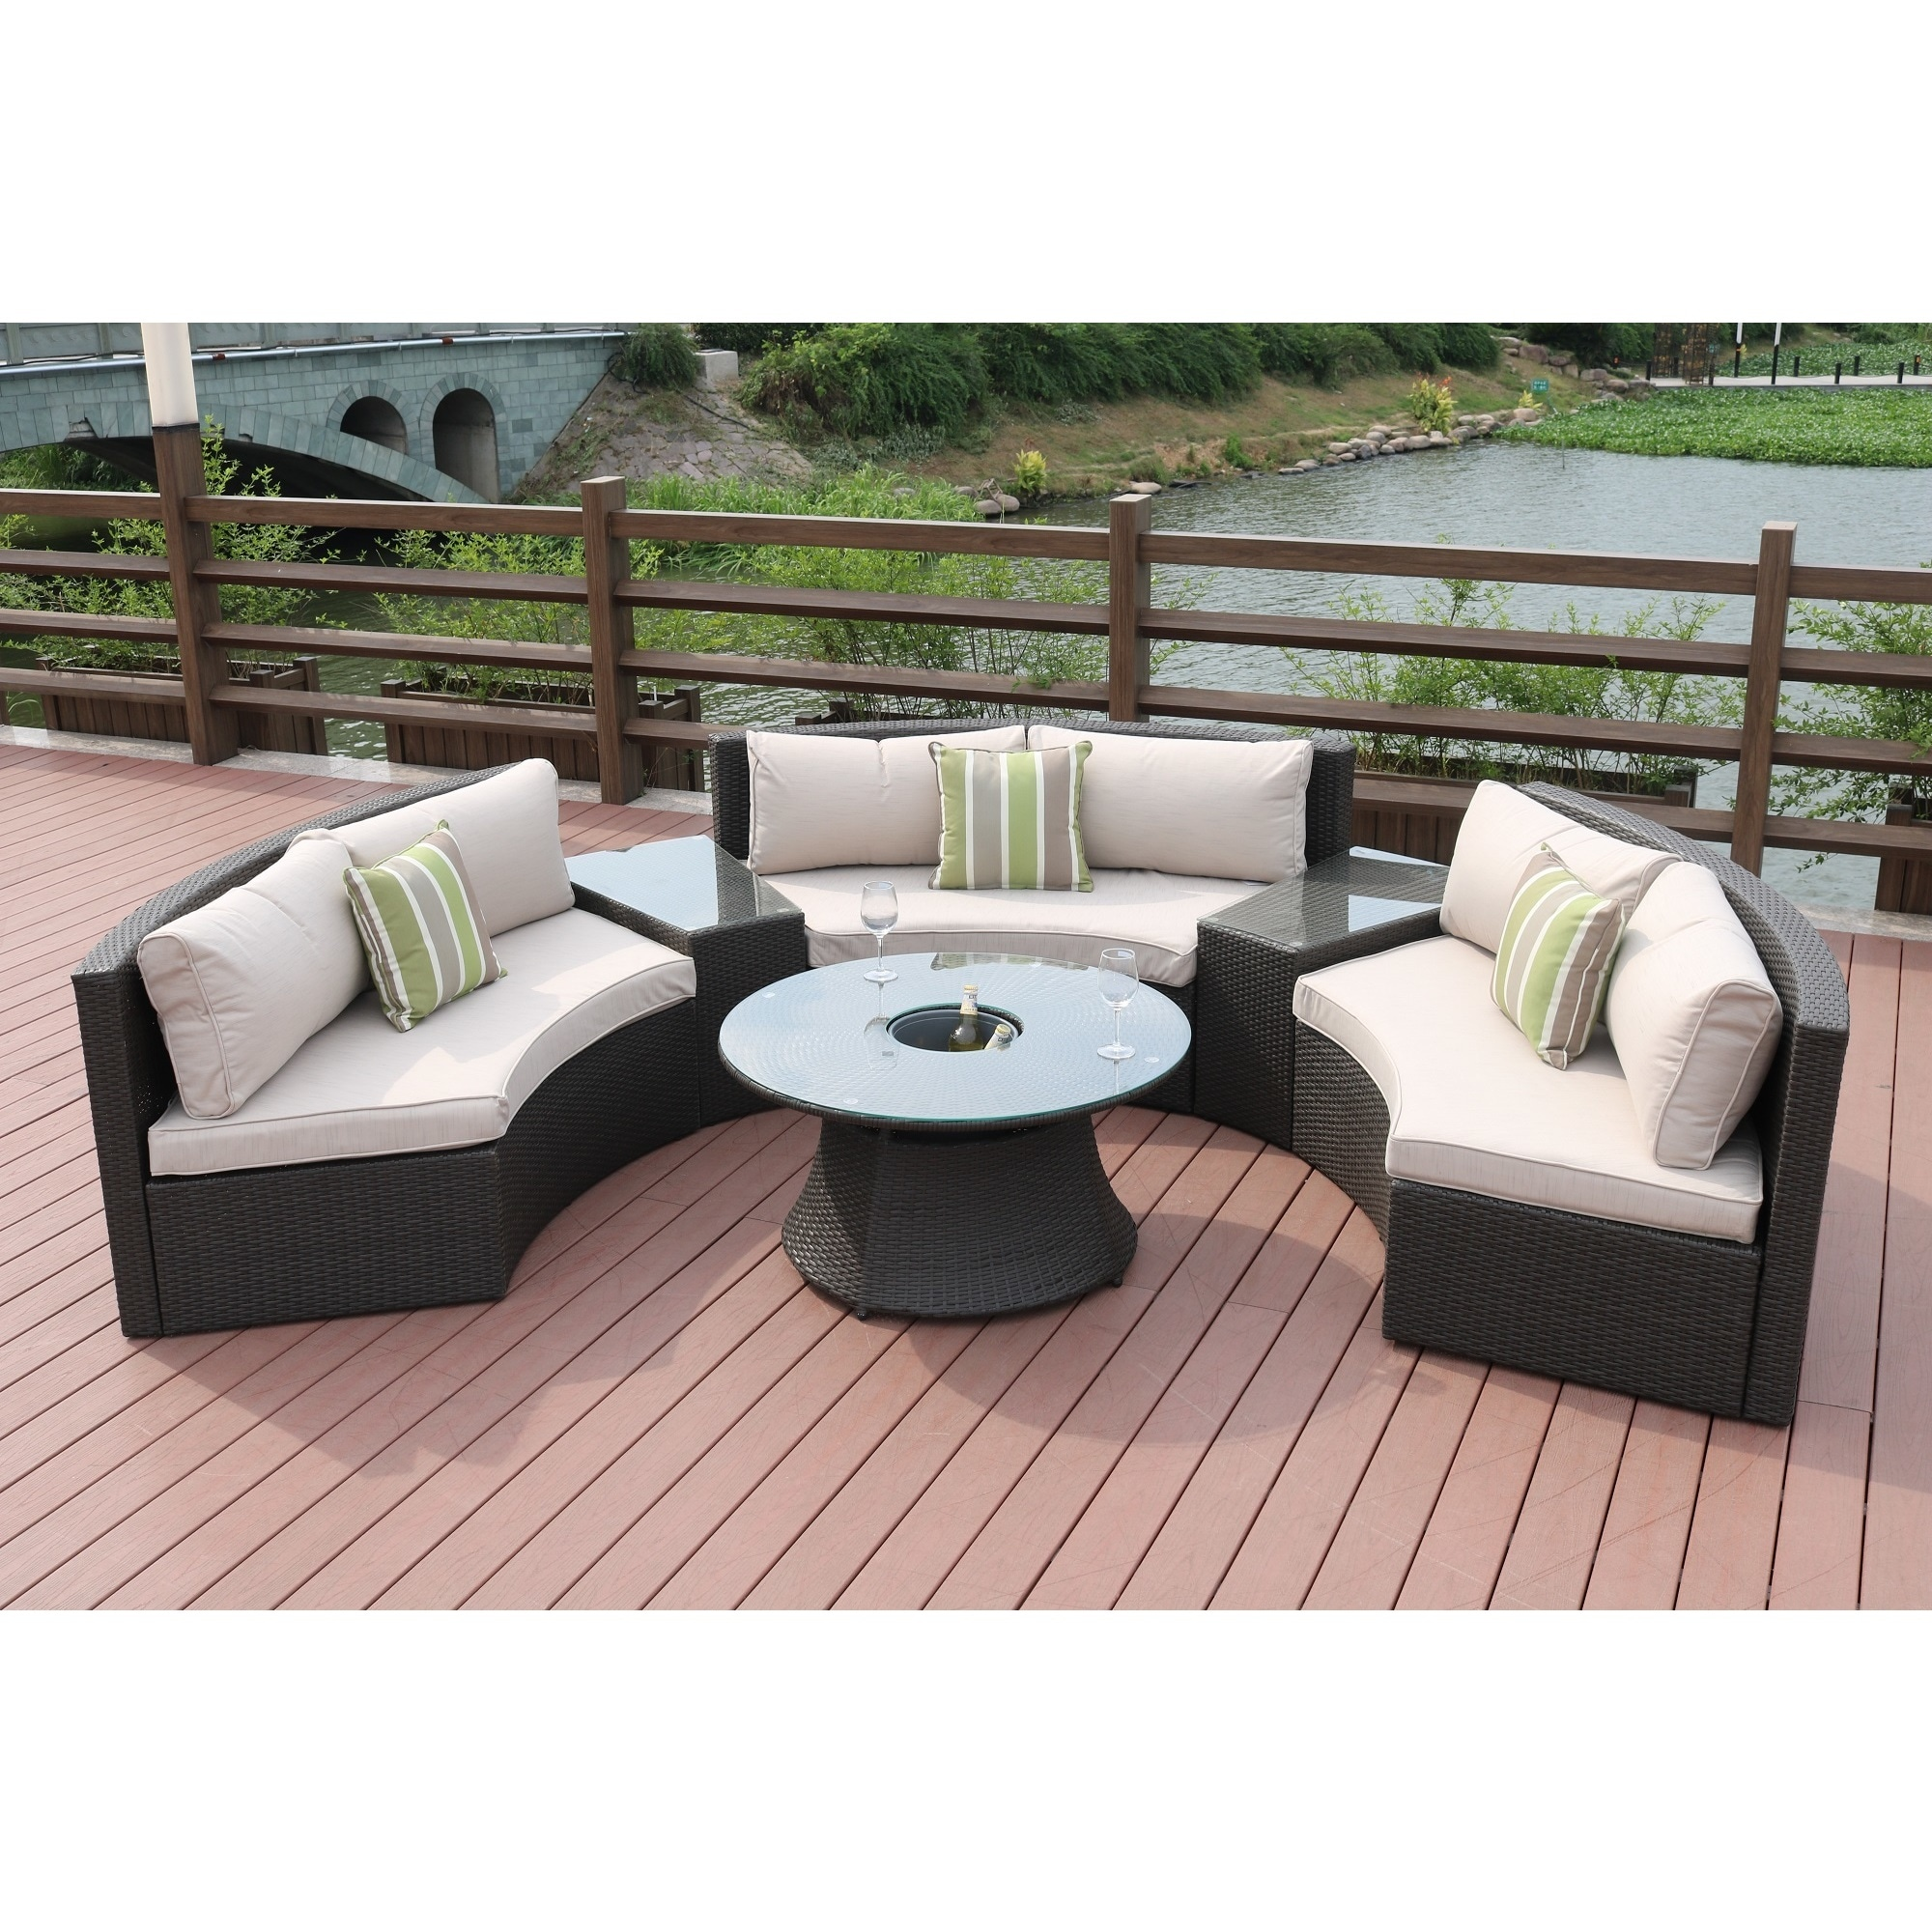 Half Moon 6-piece Outdoor Curved Sectional Sofa with Side Table Set ...